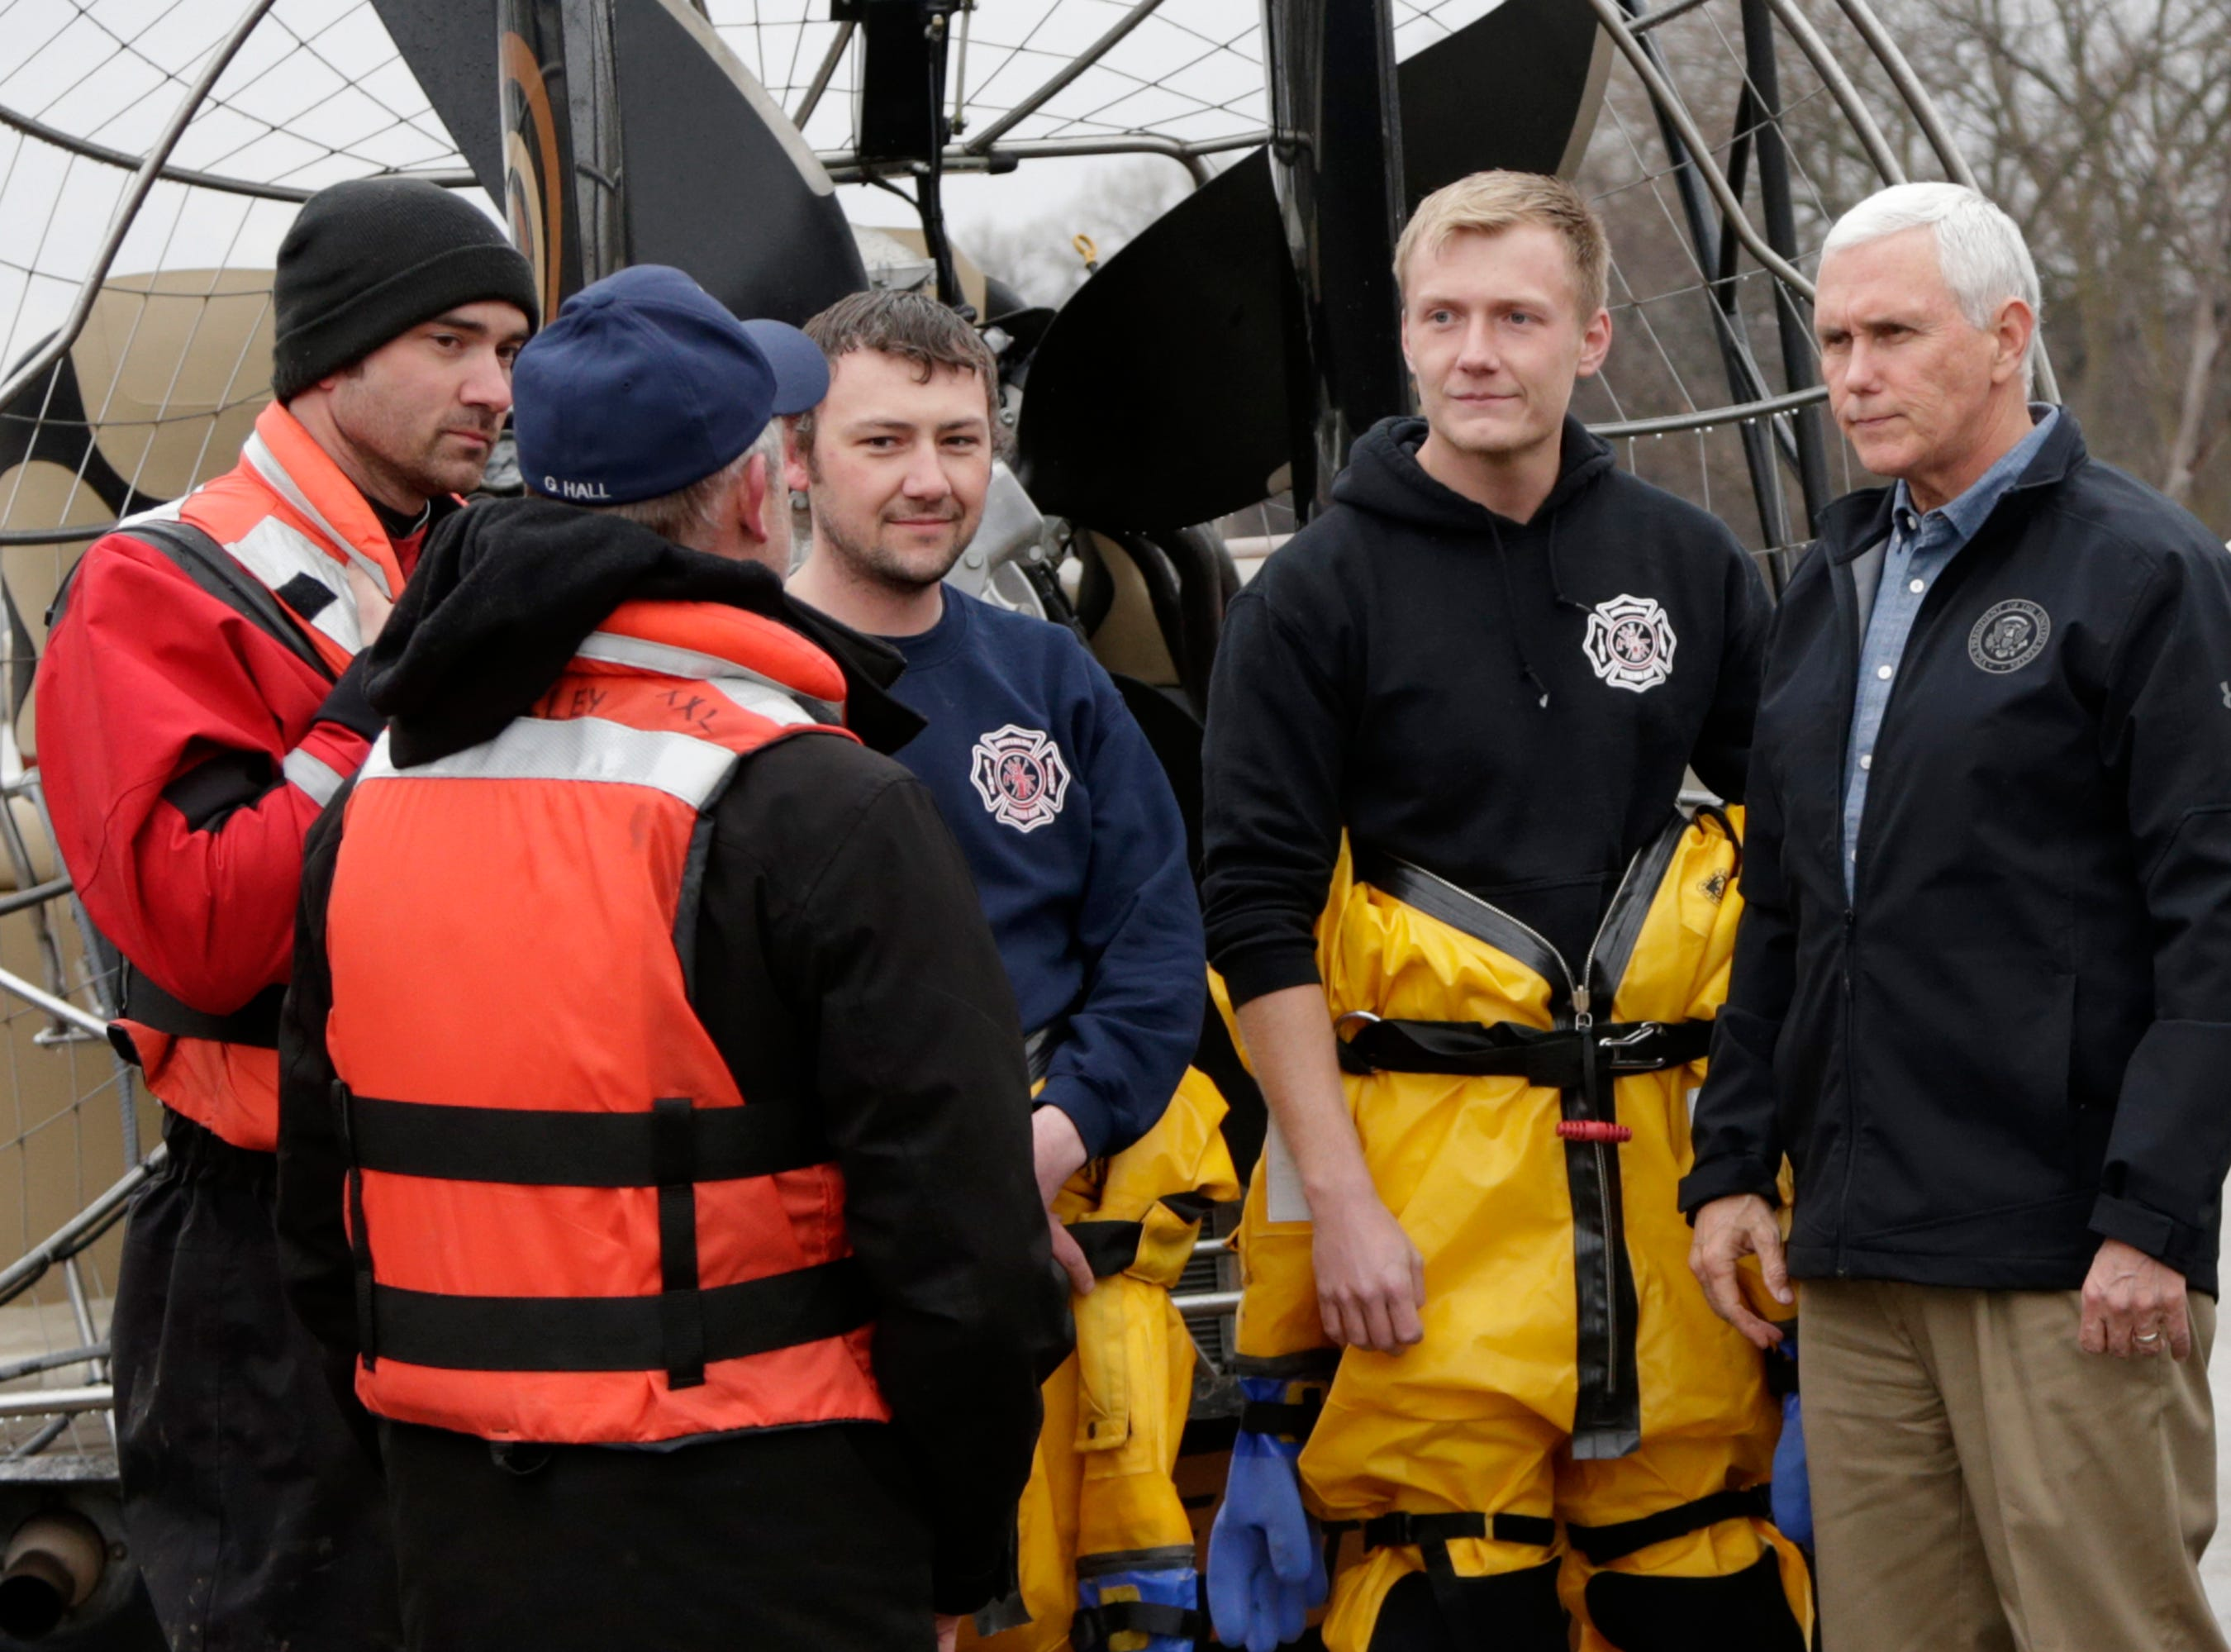 Vice President Mike Pence, right, meets with first responders and volunteers who had helped evacuate people to safety during the recent floods, as the Elkhorn River is in the rear, in Omaha, Neb., Tuesday, March 19, 2019.